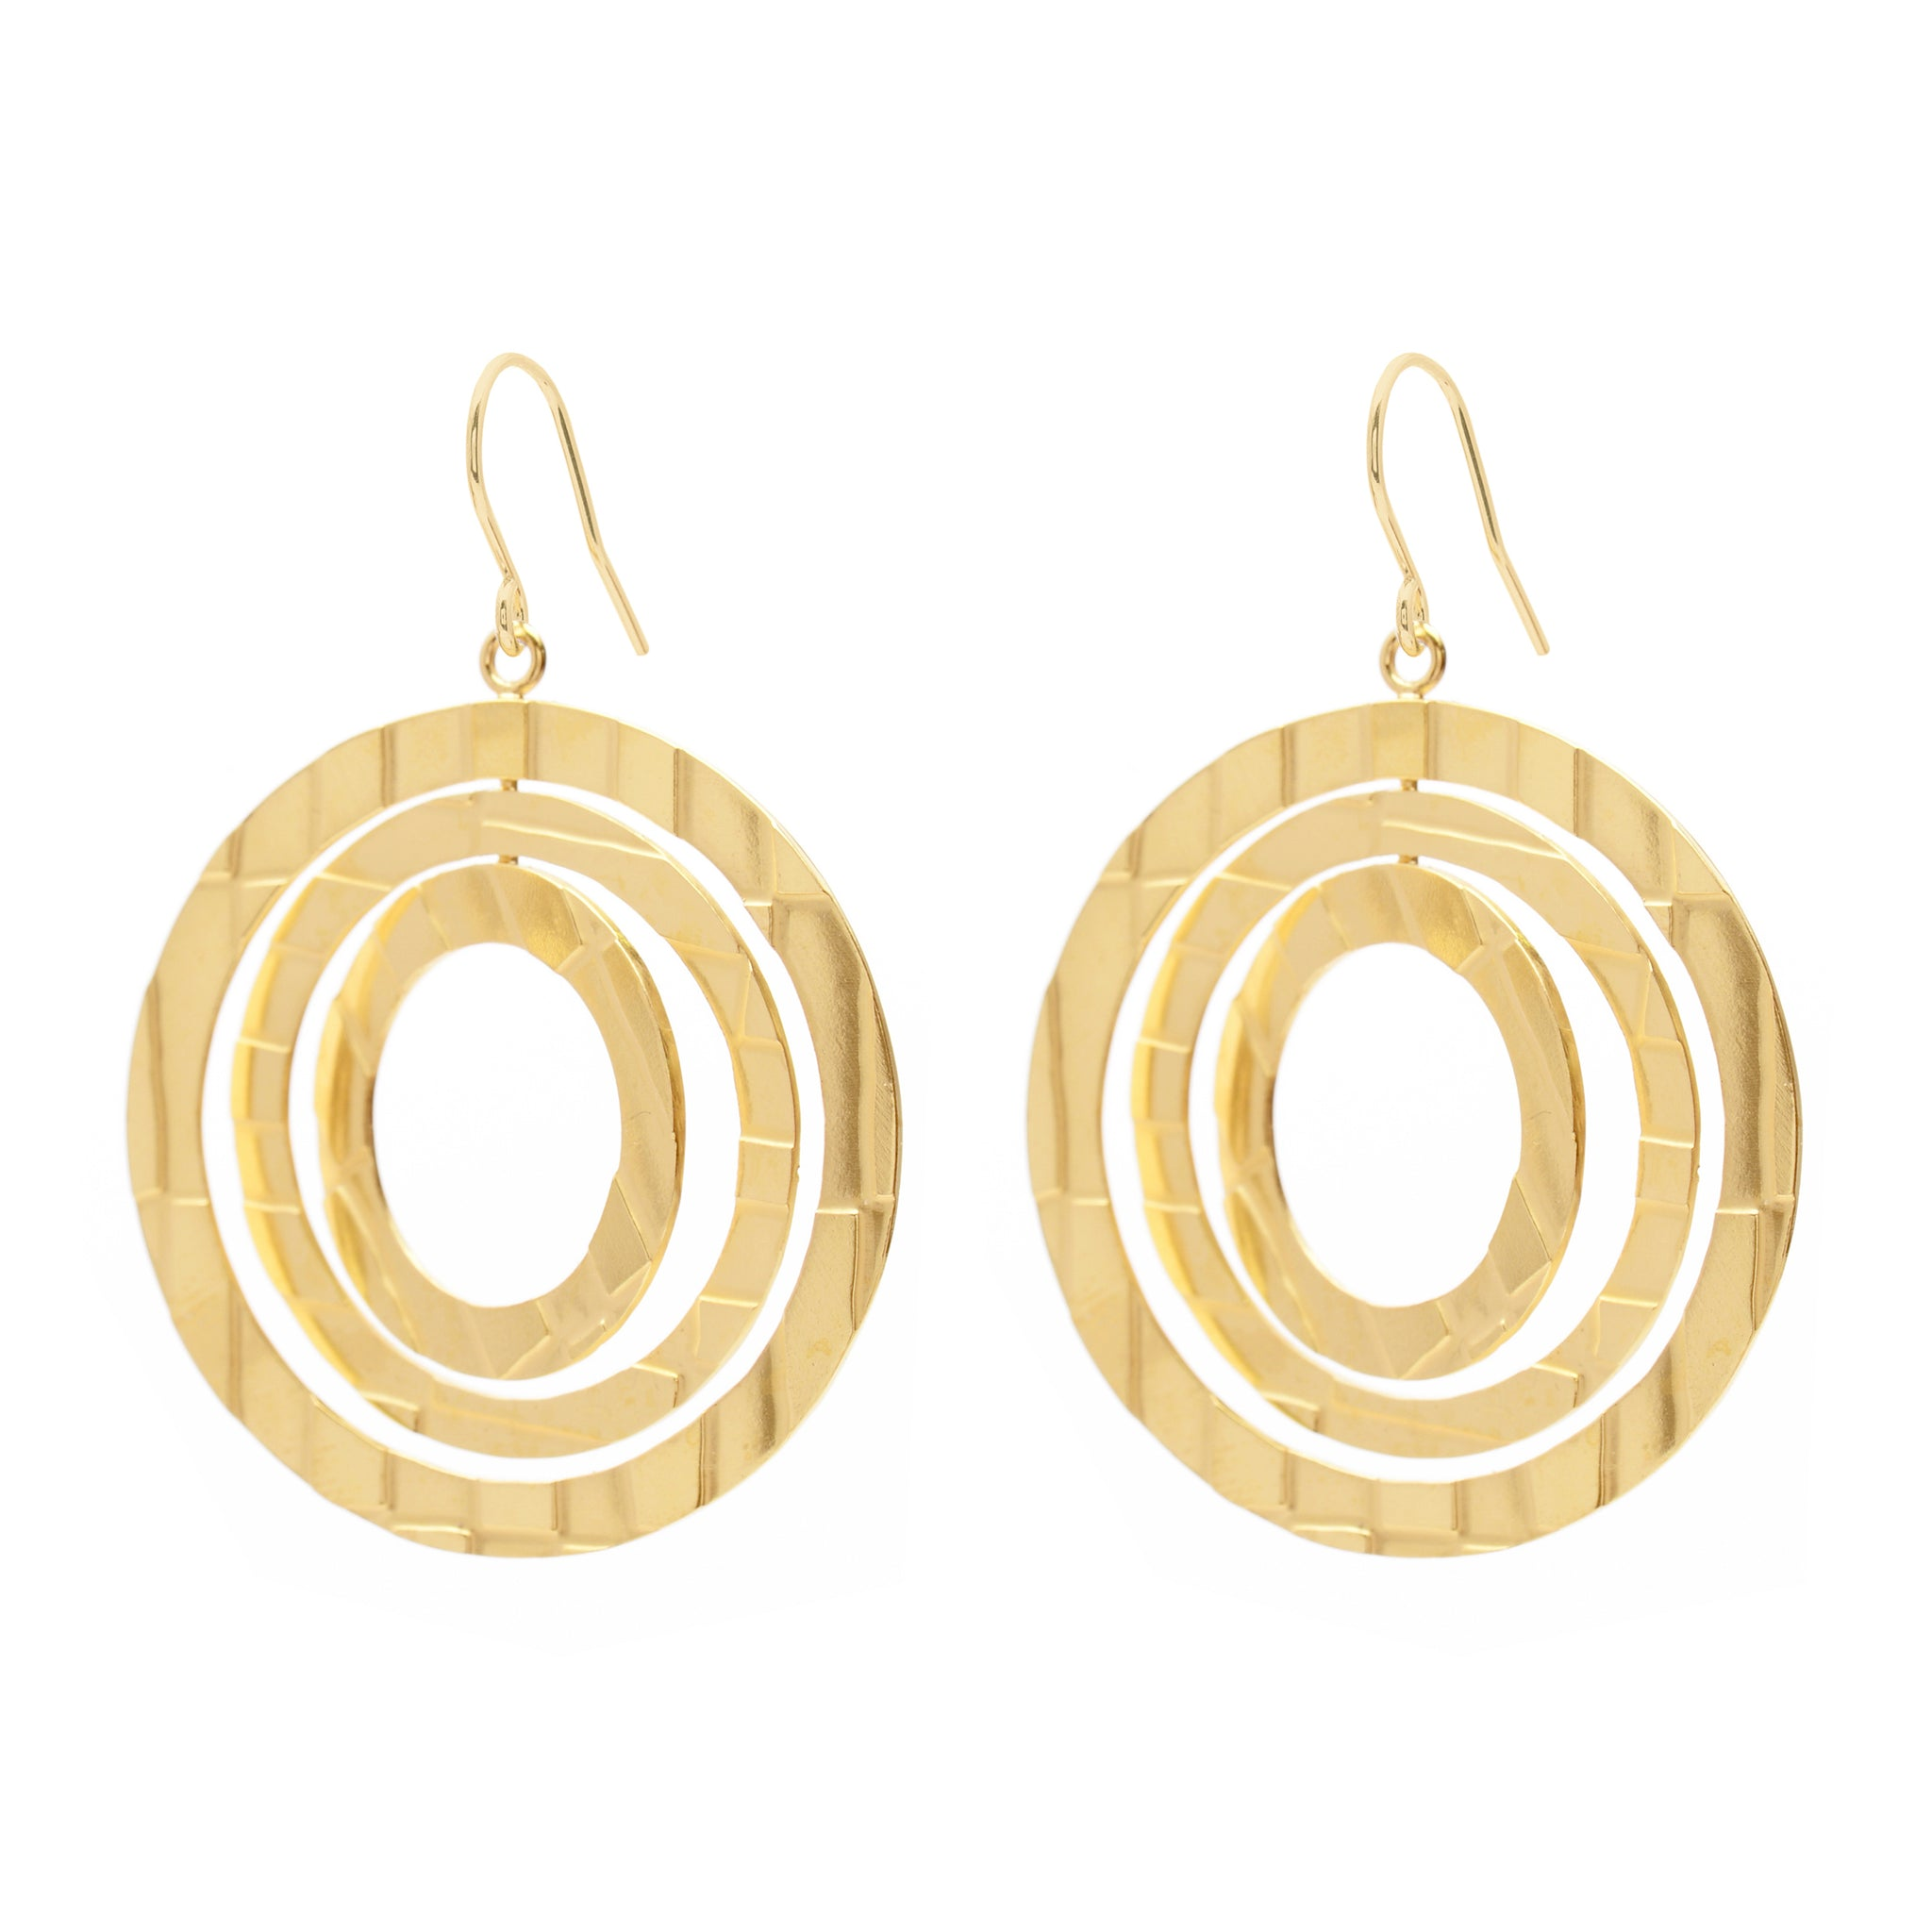 Hook Earrings with etched circular Pendant